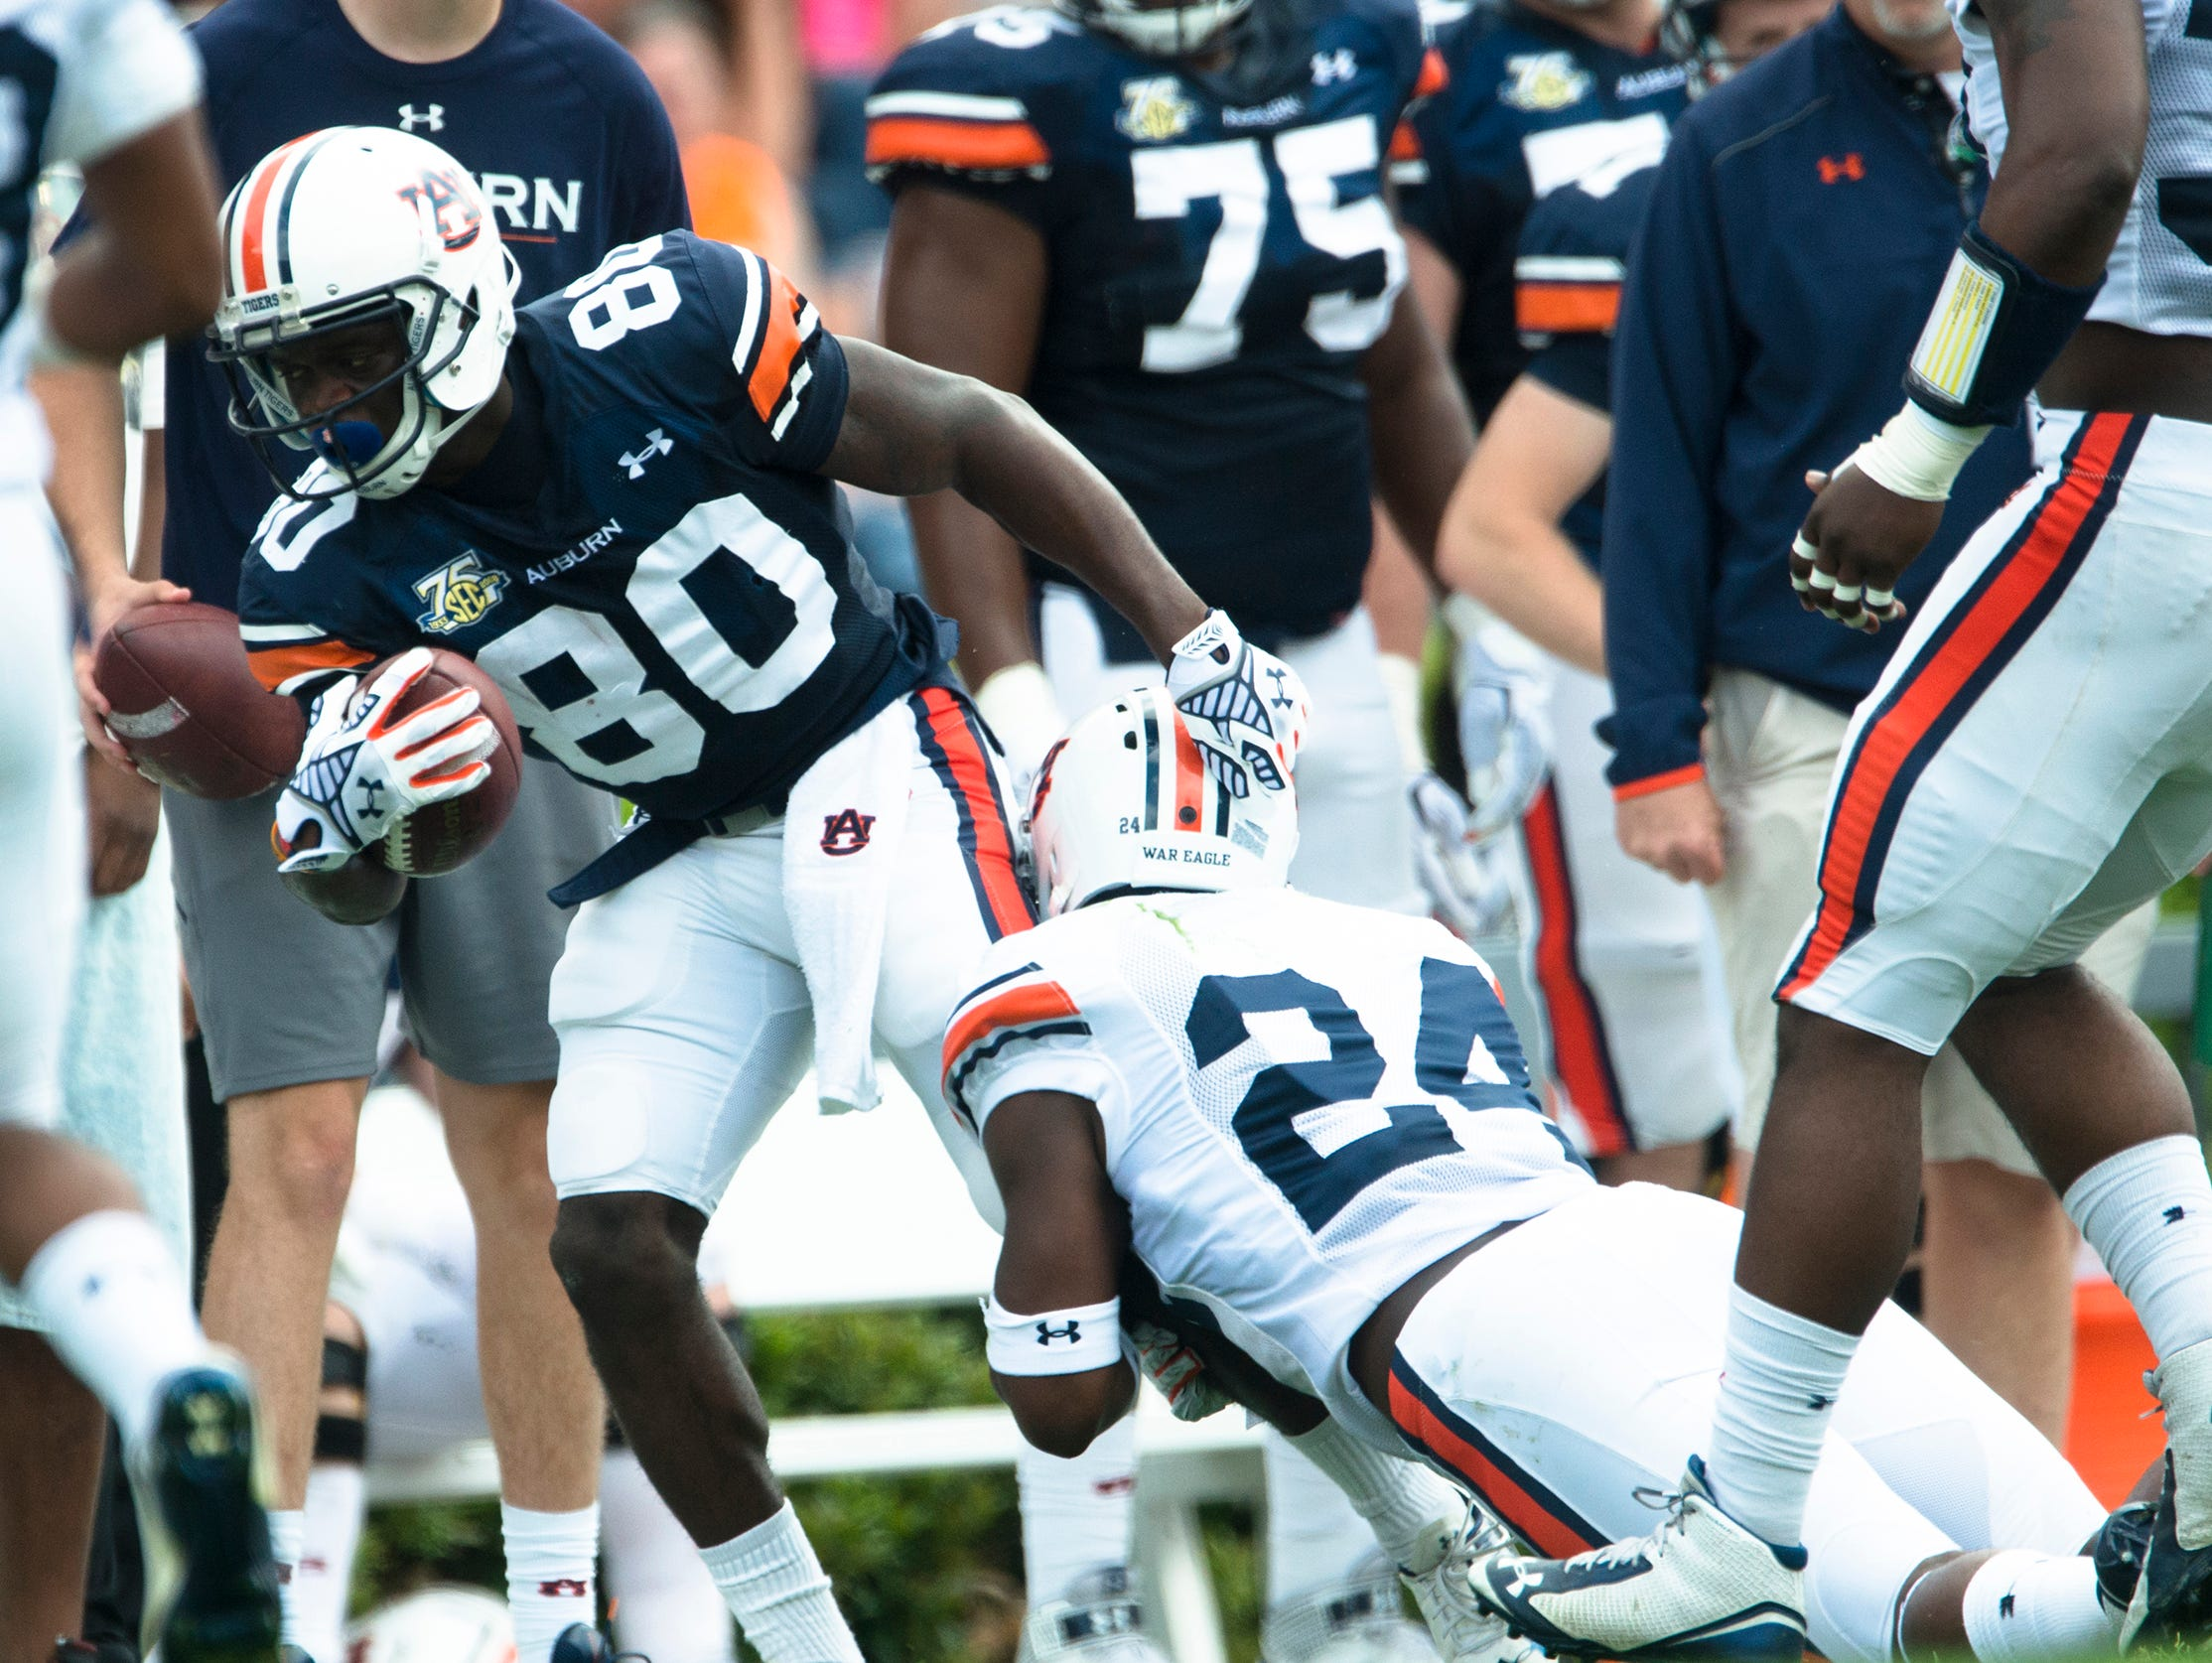 Auburn wide receiver Marcus Davis (80) is tackled by Auburn defensive back Derrick Moncrief during the Auburn A-Day spring game on Saturday, April 18, 2015, at Jordan-Hare Stadium in Auburn, Ala.